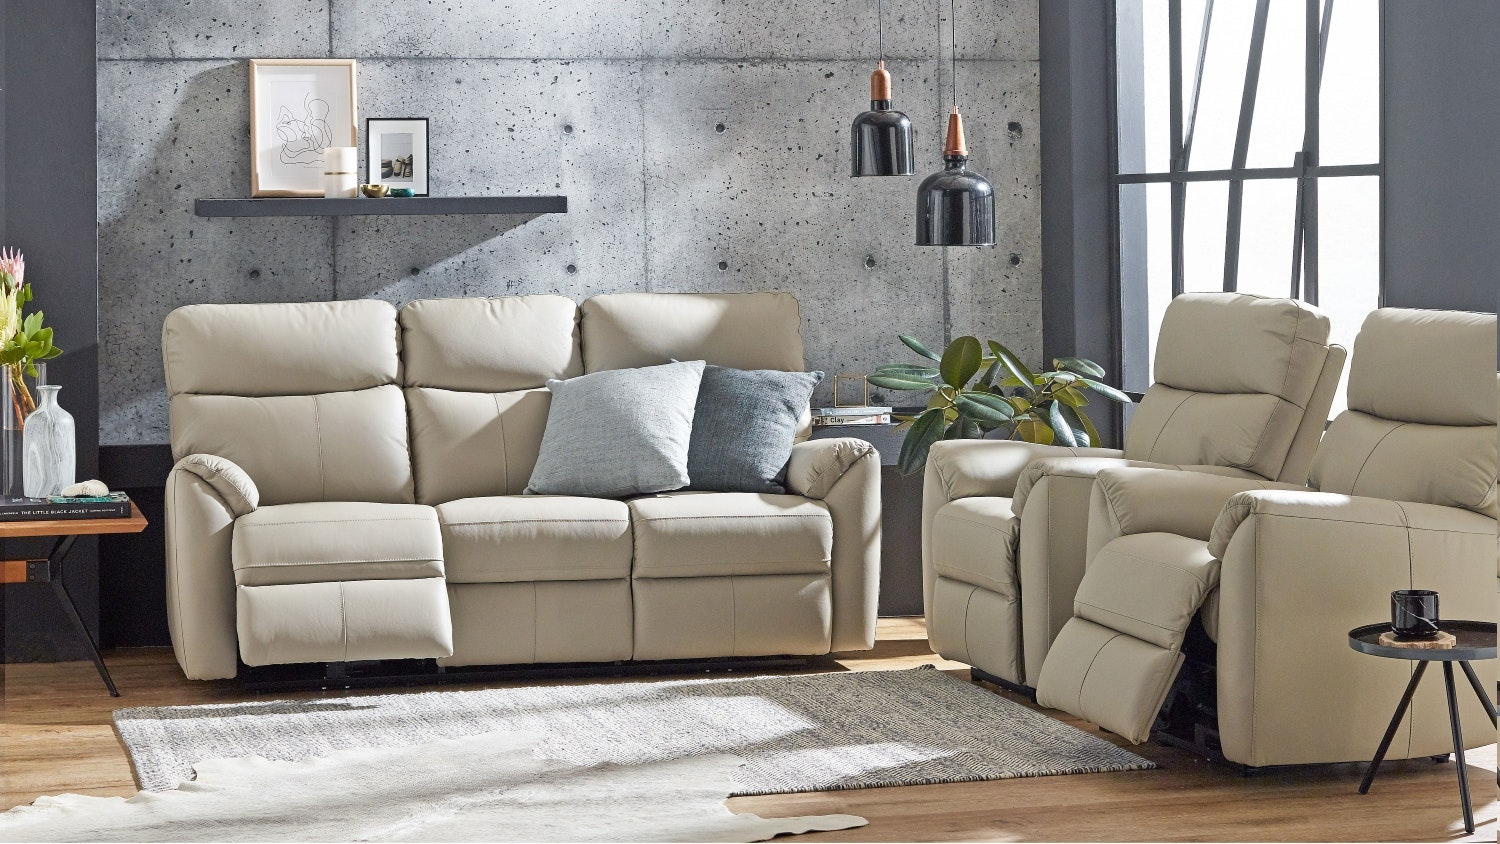 Montague Leather Sofa with Twin Electric Reclining Actions - Mist